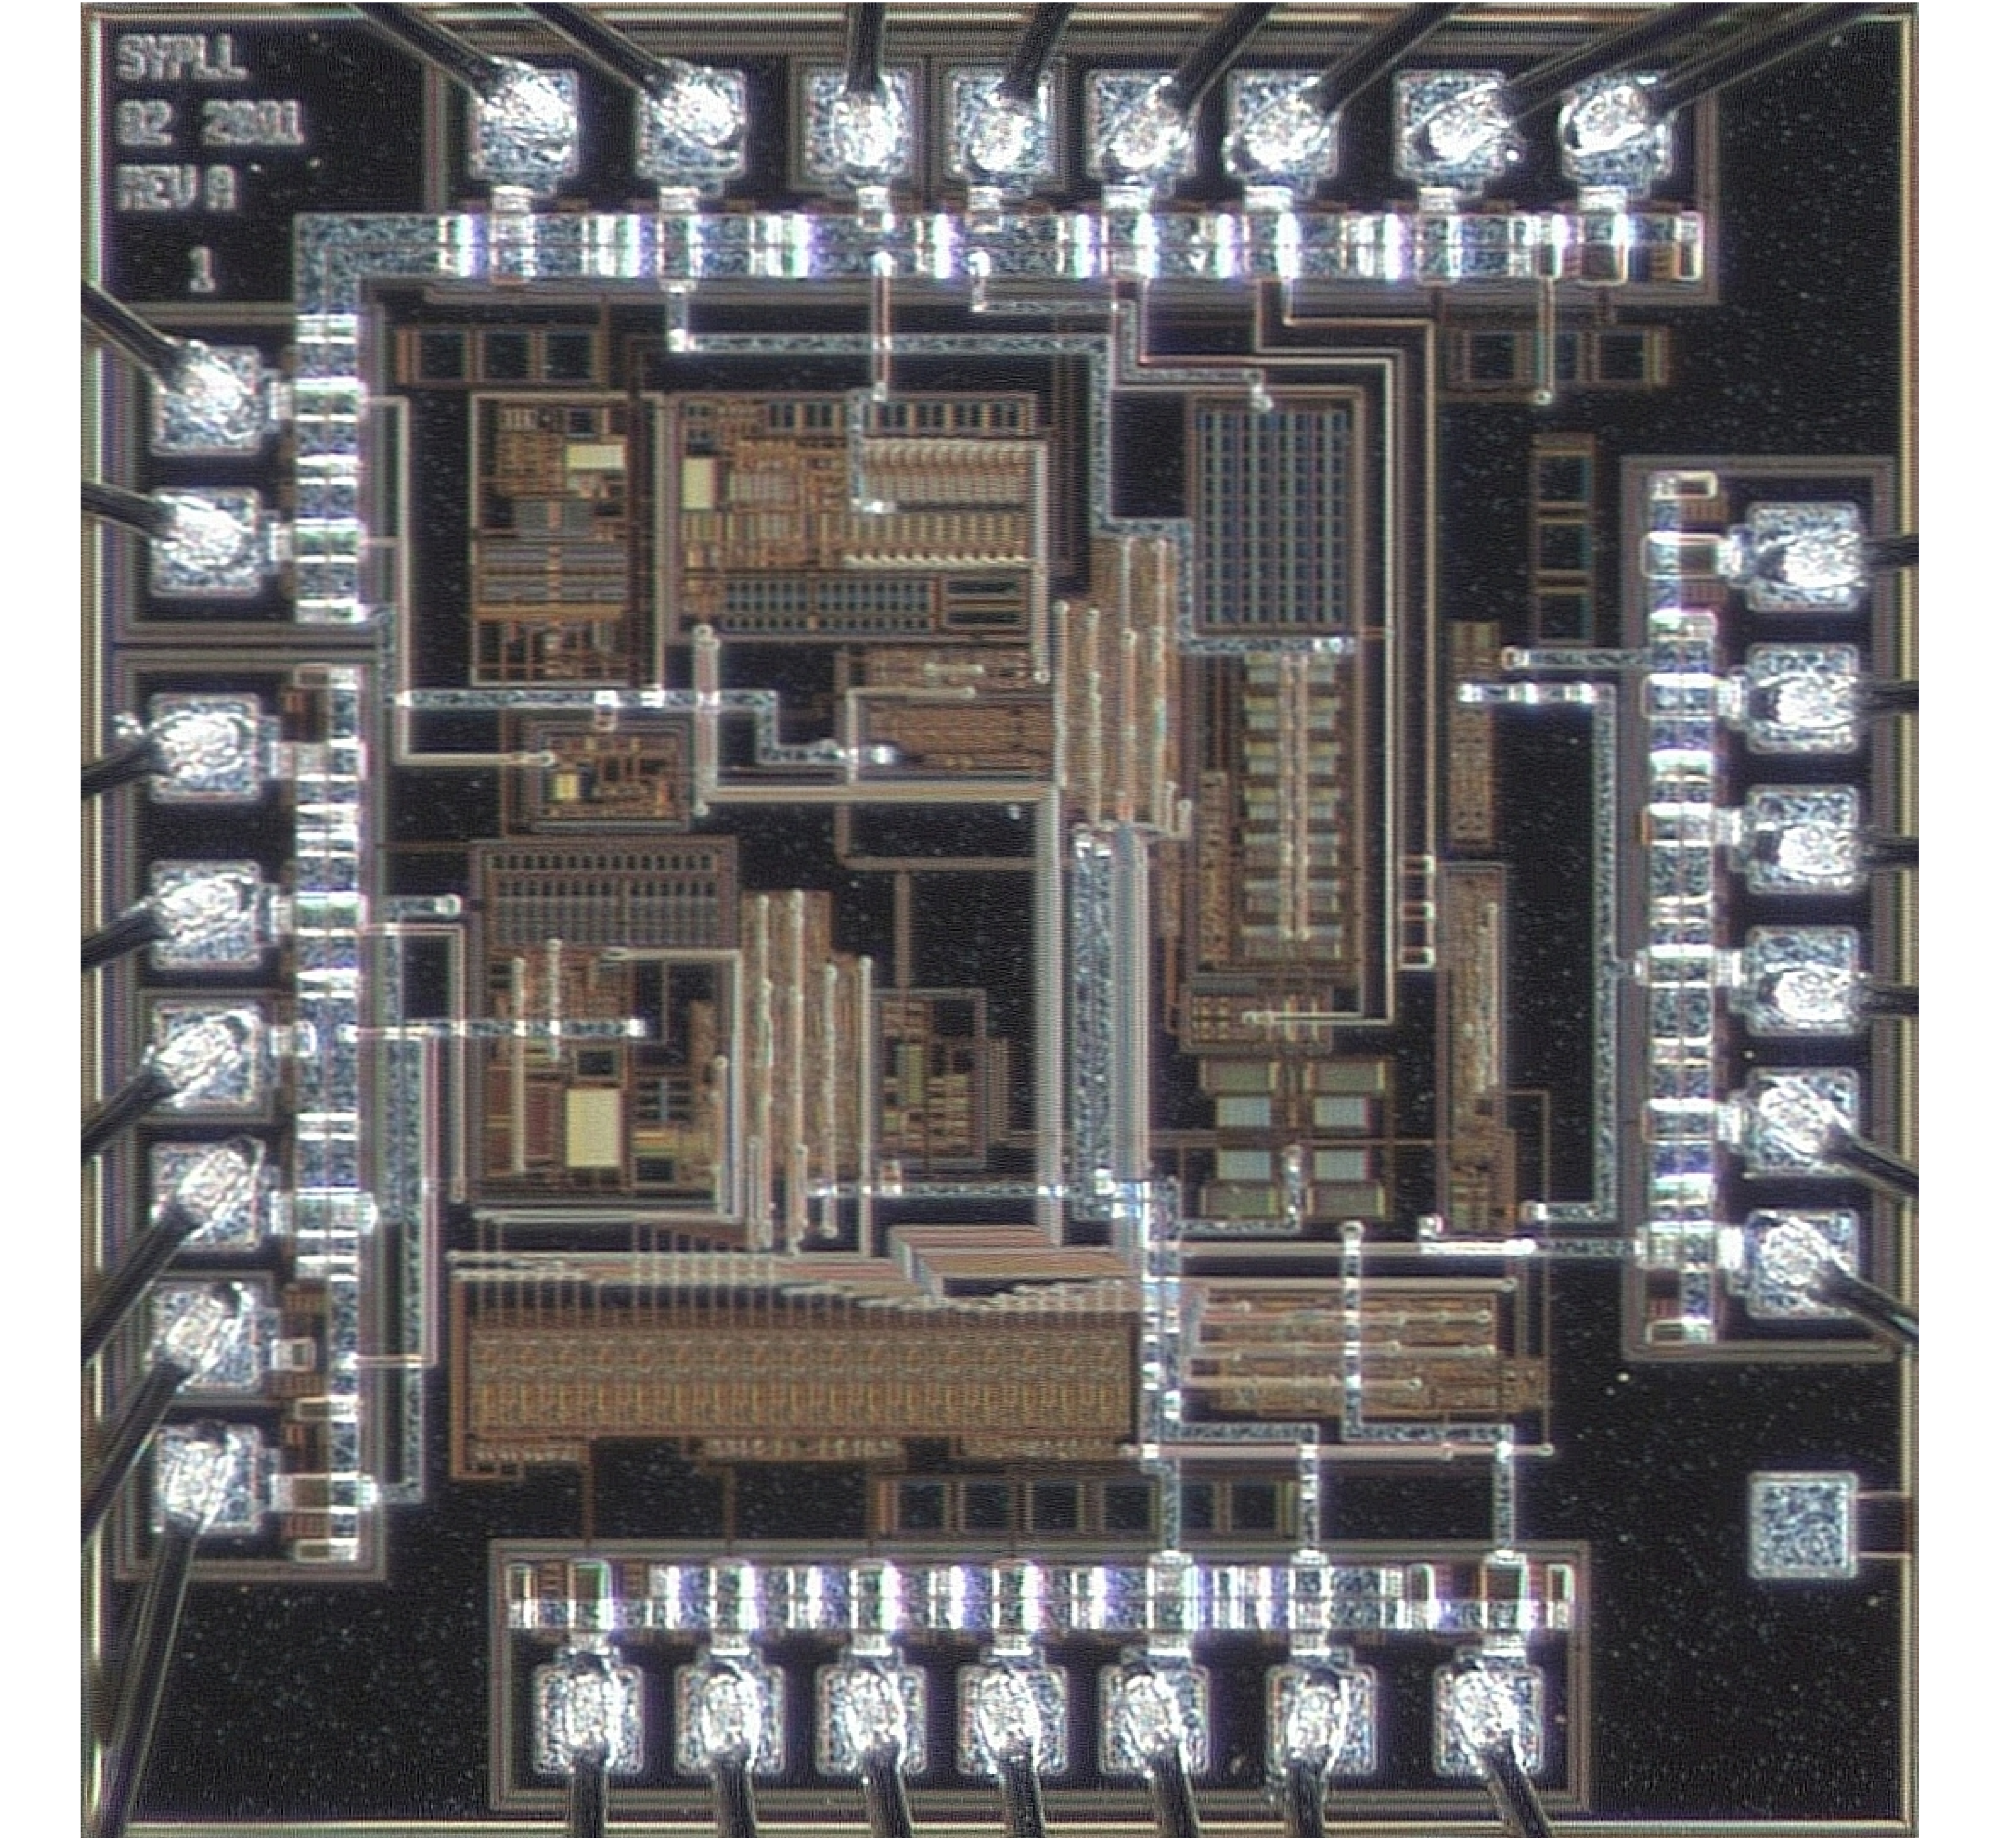 Integrated Signal Processing Group Ispg Circuits And Systems Deals With Realization Of Some Our